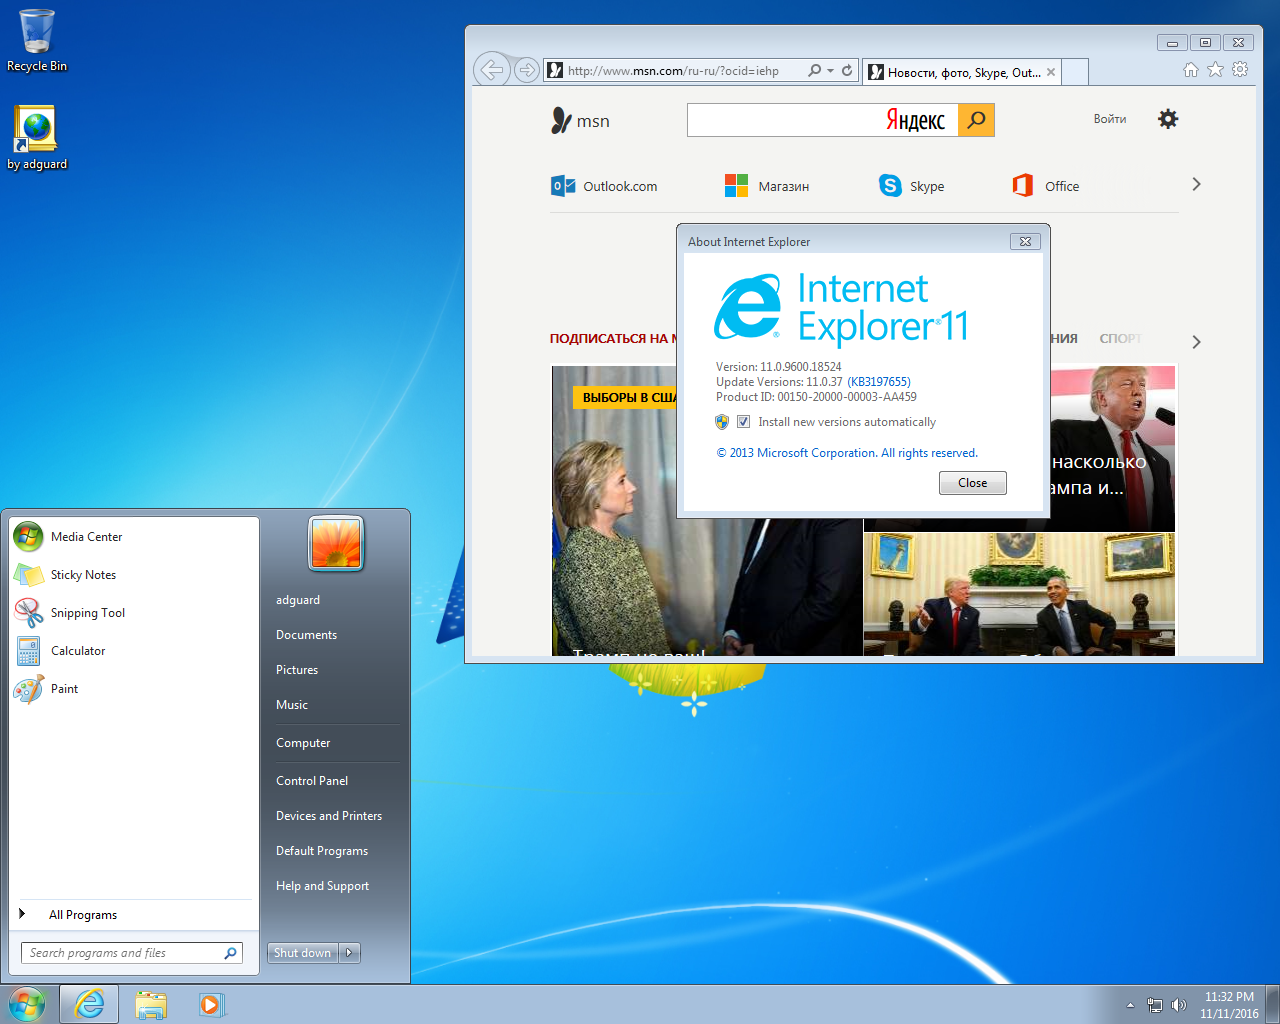 Microsoft Windows 7 Thin Pc X86 14 - swasexexsweet : Inspired by